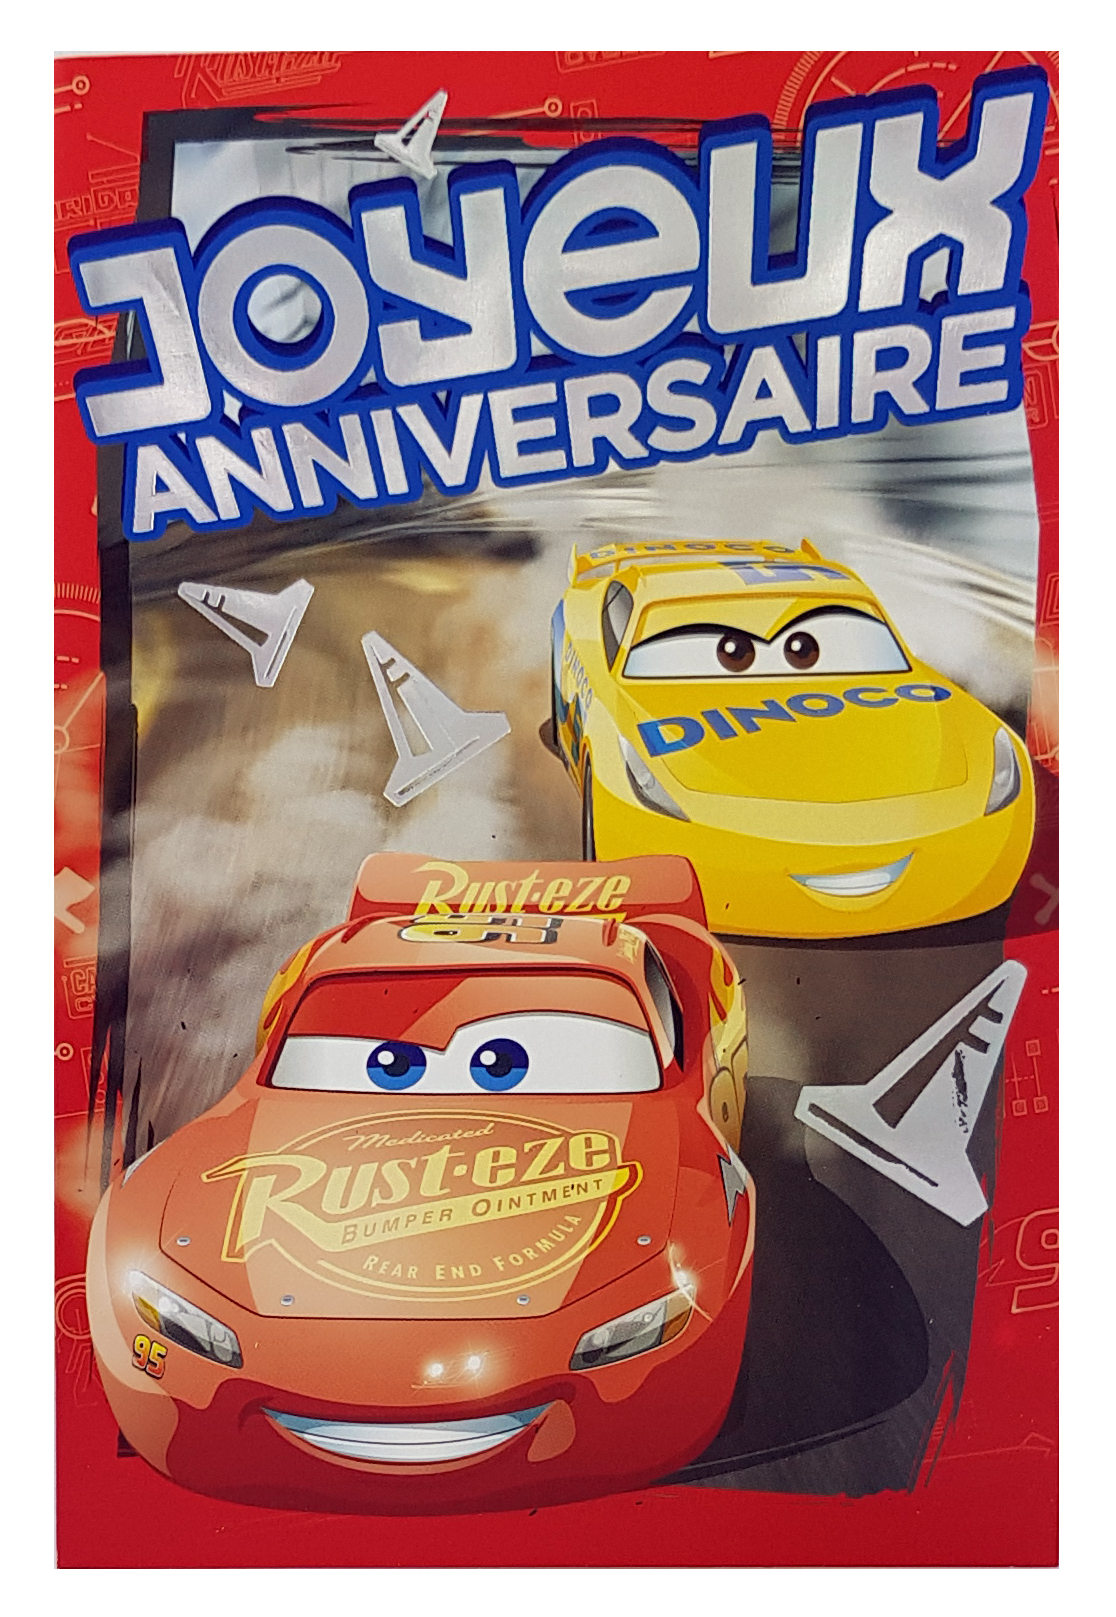 Carte de menu anniversaire Cars Disney Pixar - Flash McQueen Rust.eze, Cruz Dinoco. Réf. 86